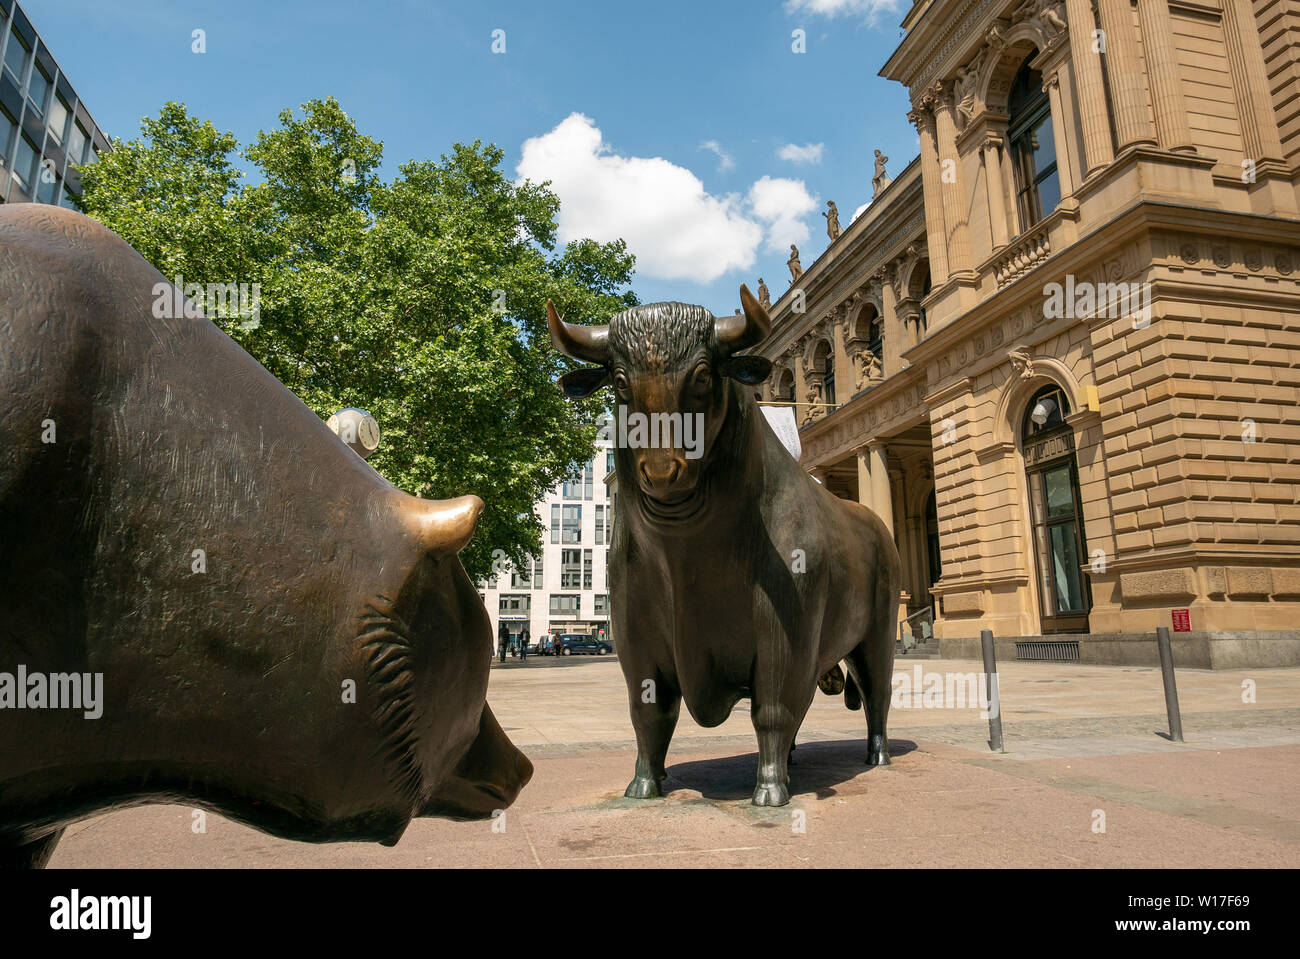 FRANKFURT, GERMANY - JUNE 17, 2019: Bull and bear in front of the Frankfurt Stock Exchange - Stock Image